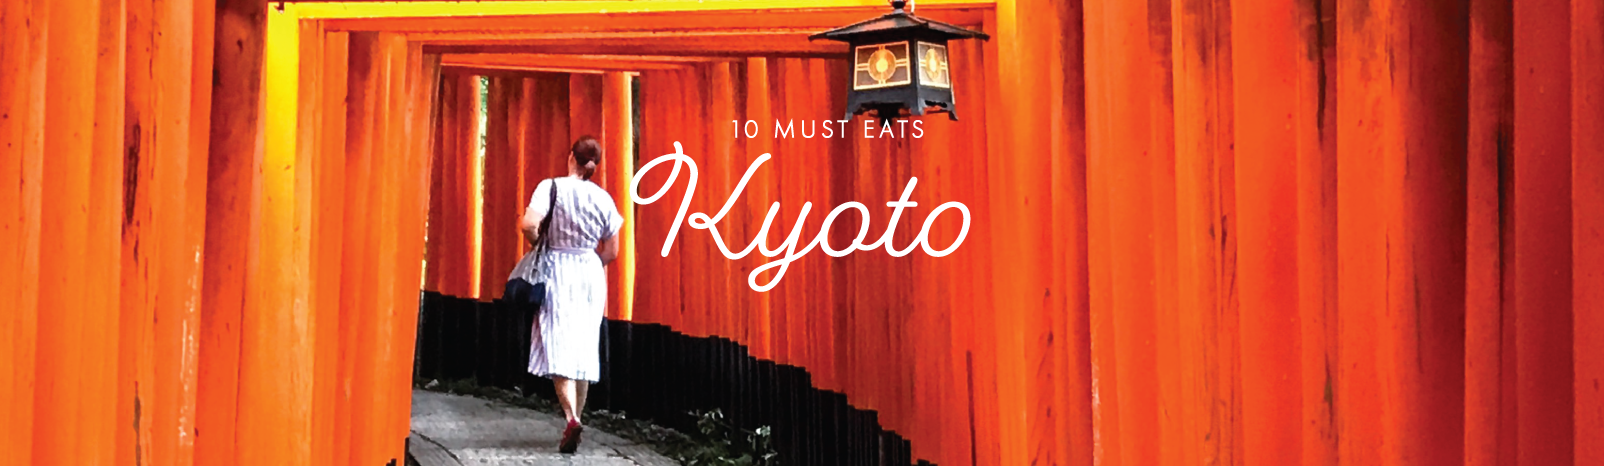 top 10 best restaurants to eat in kyoto japan